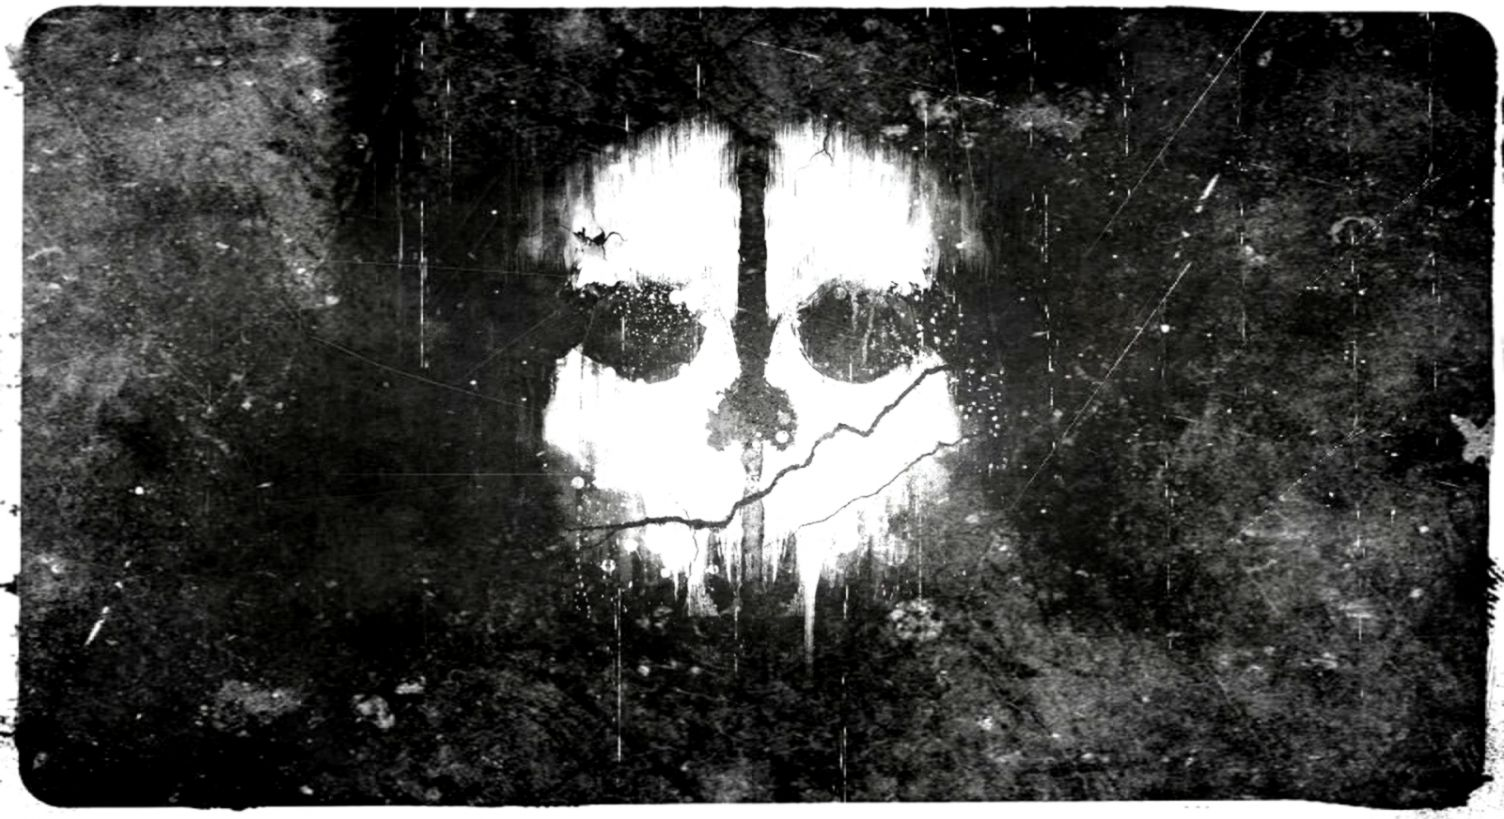 Call Of Duty Ghosts Gaming Wallpaper Hd Wallpapers Up